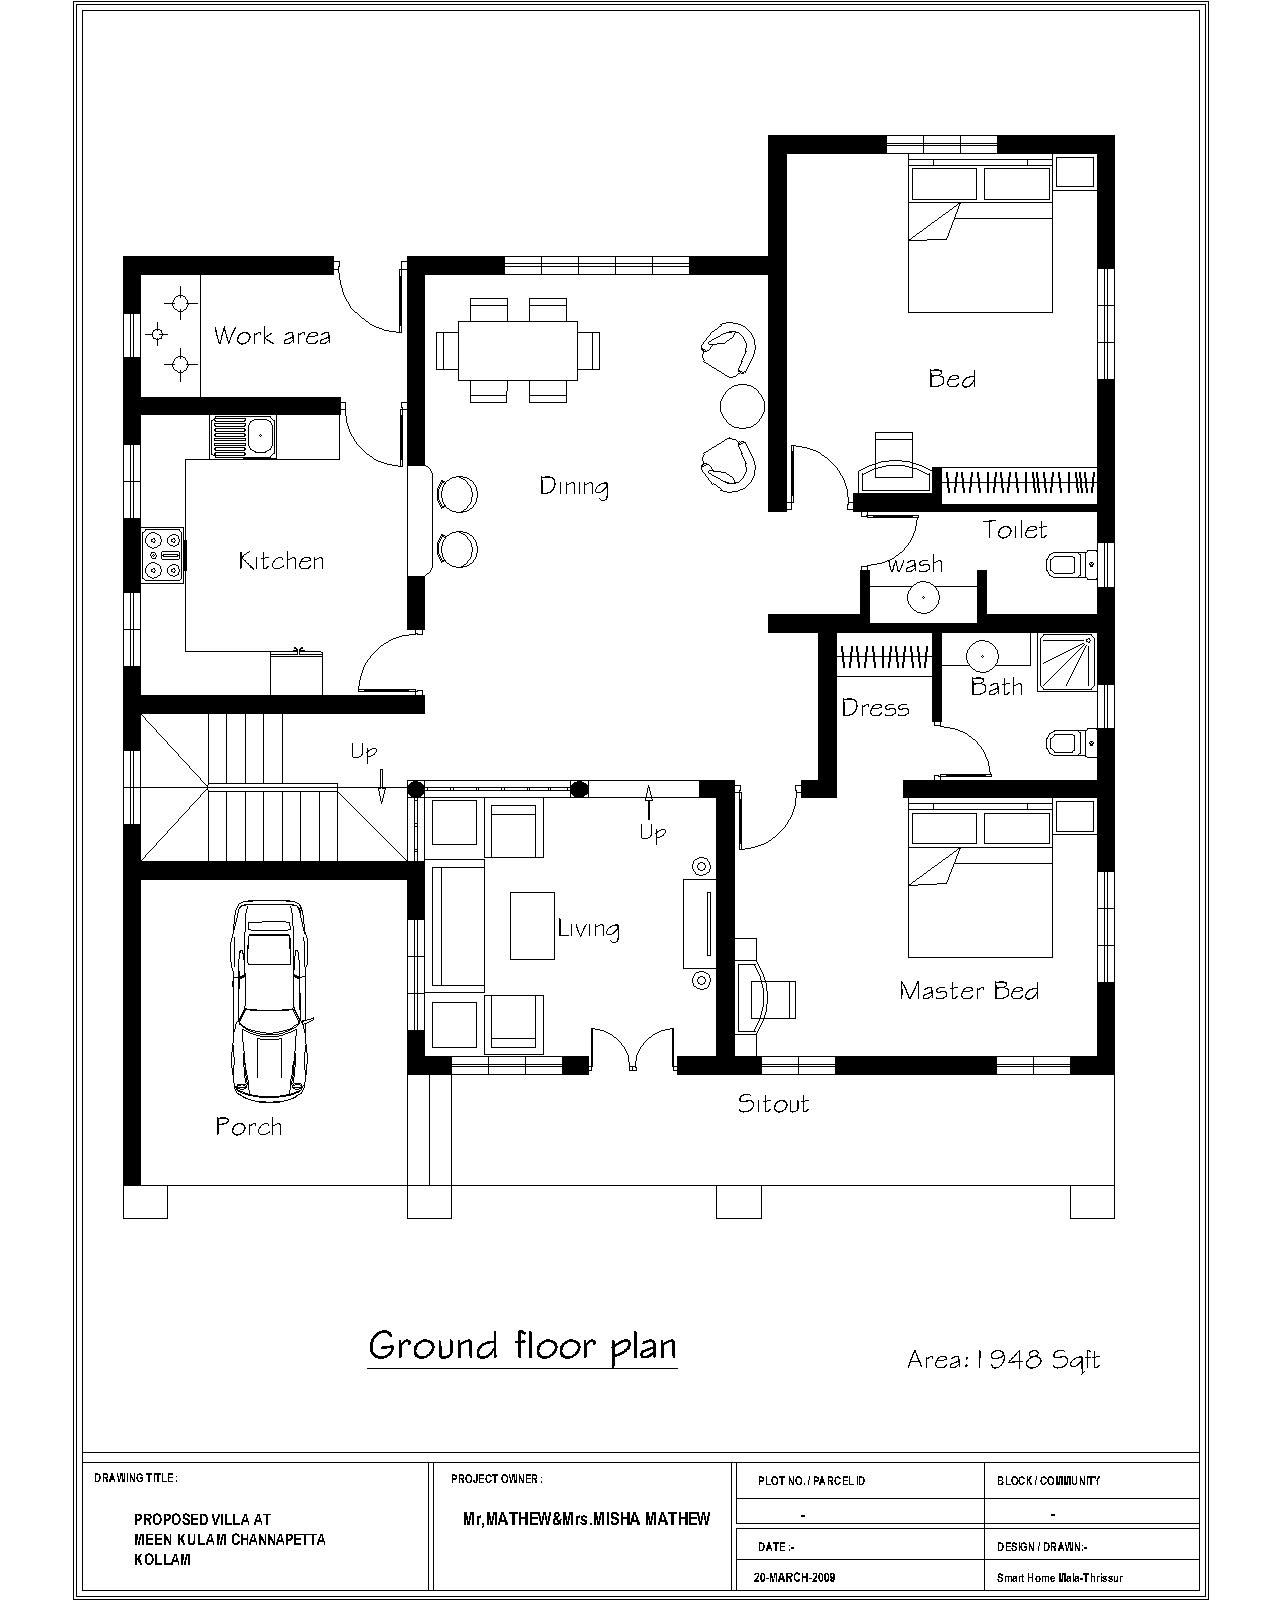 Small House Floor Plans 1000 To 1200 Sq Ft Chris Daughtry Wife And Kids Duplex House Plans Indian Style Indian House Plans Bedroom House Plans House Plans